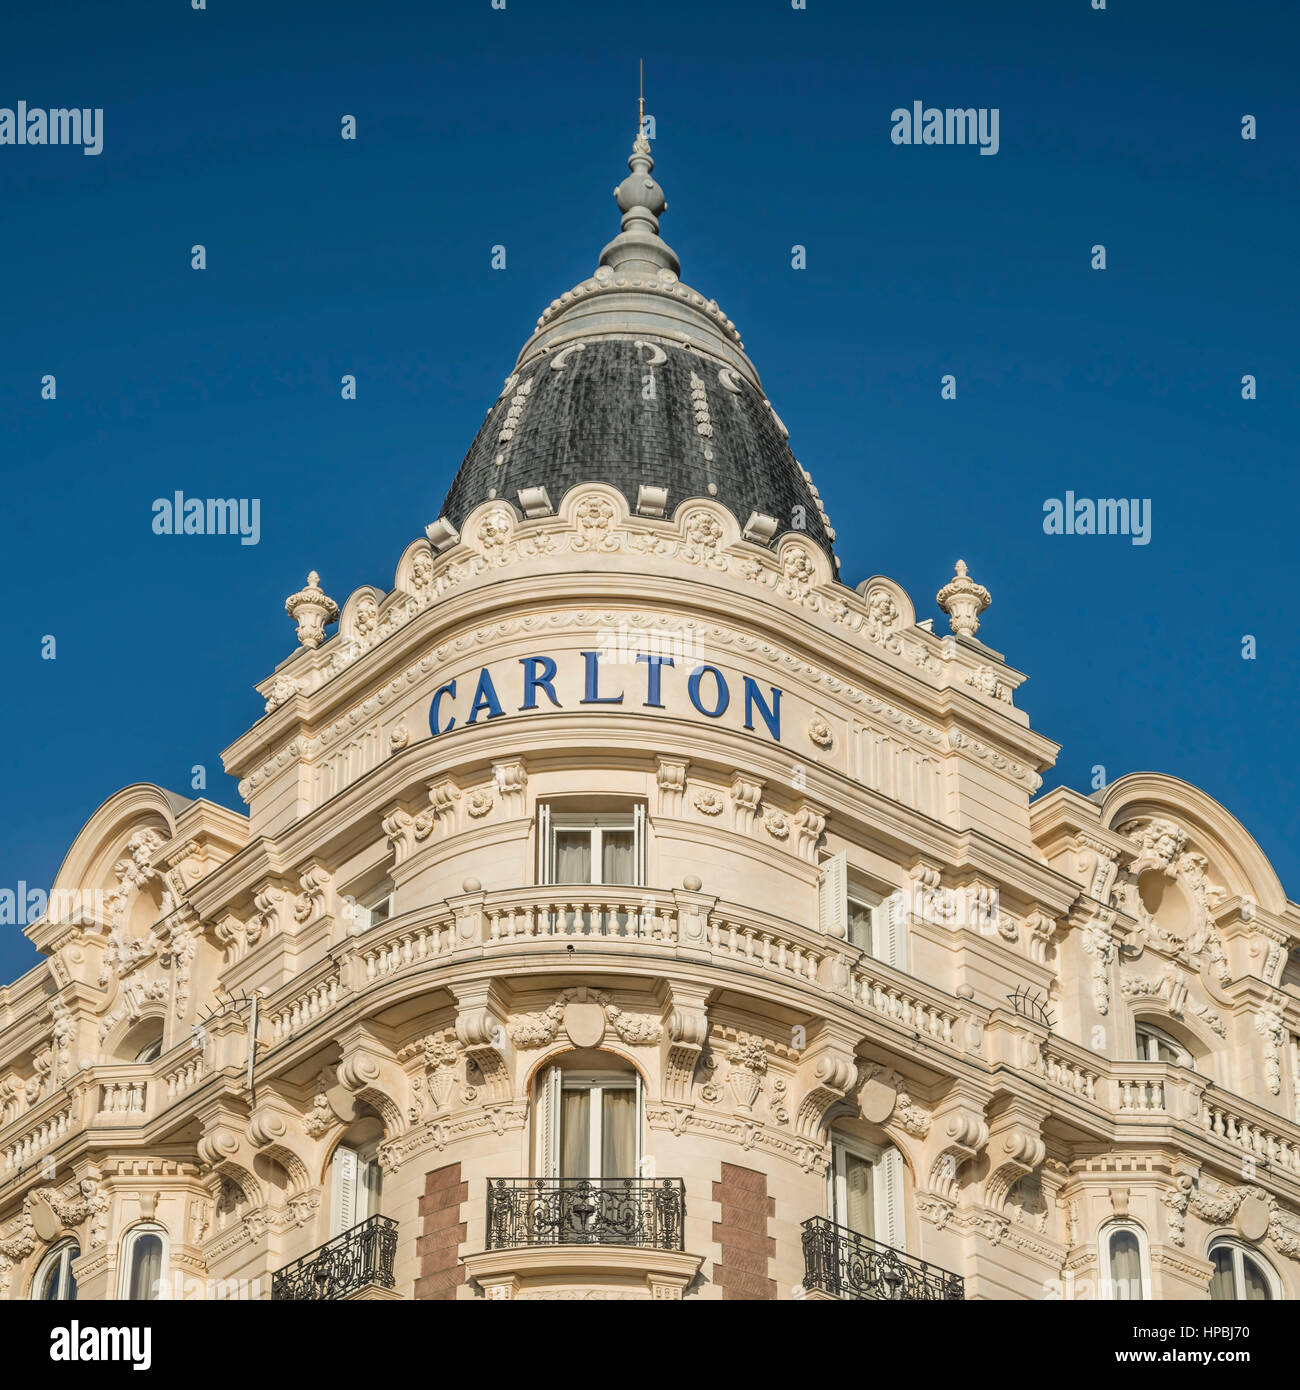 Carlton, Hotel, Facade, Croisette,  Cannes, Cote d Azur, France, Stock Photo